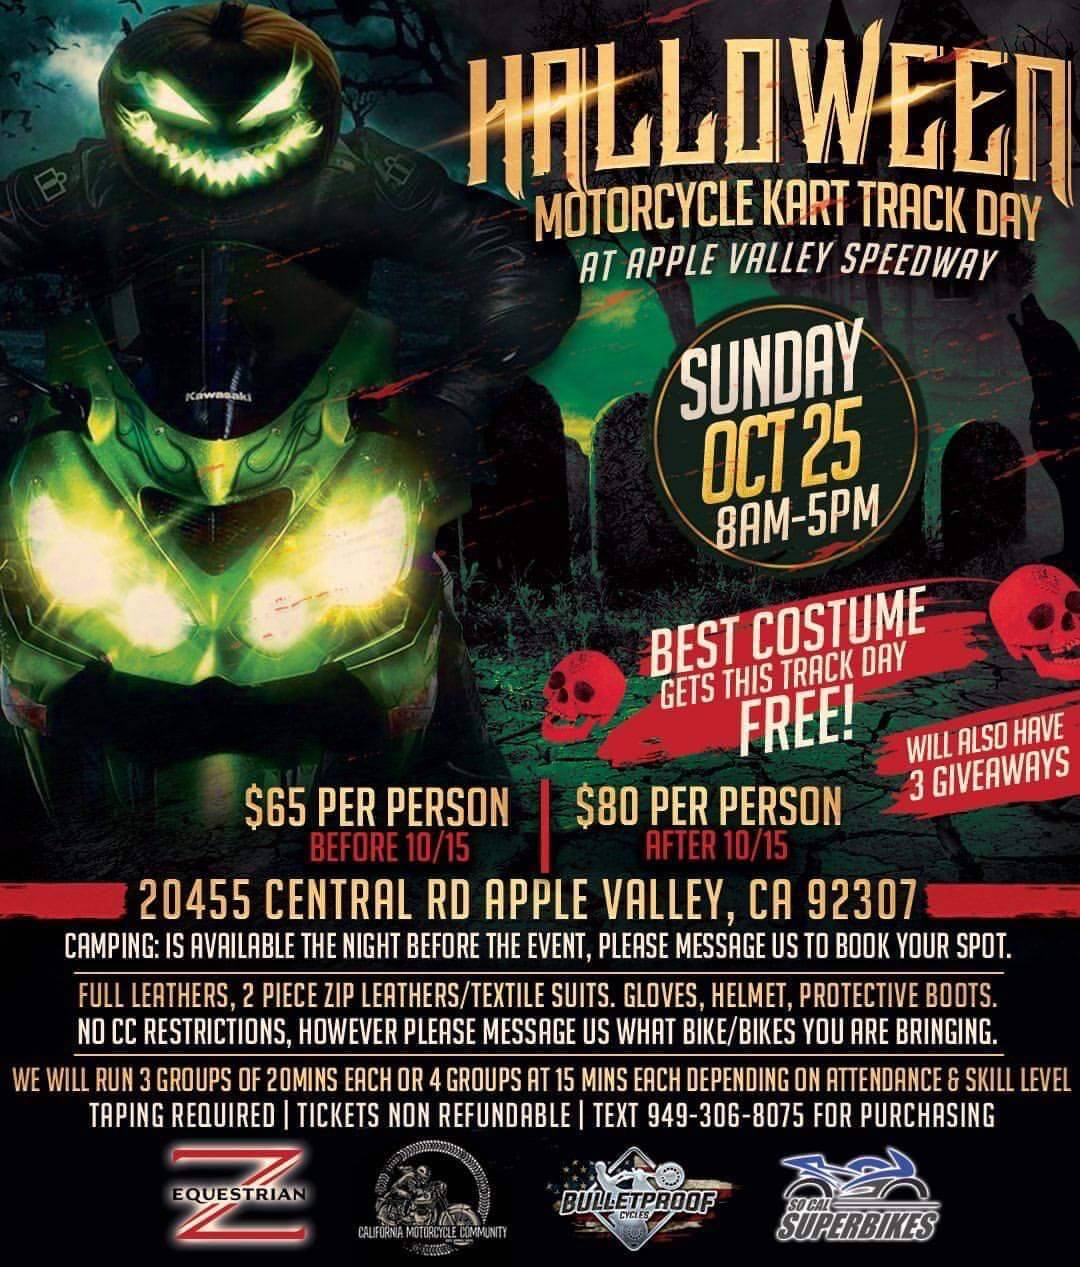 Halloween Motorcycle Kart Track Day